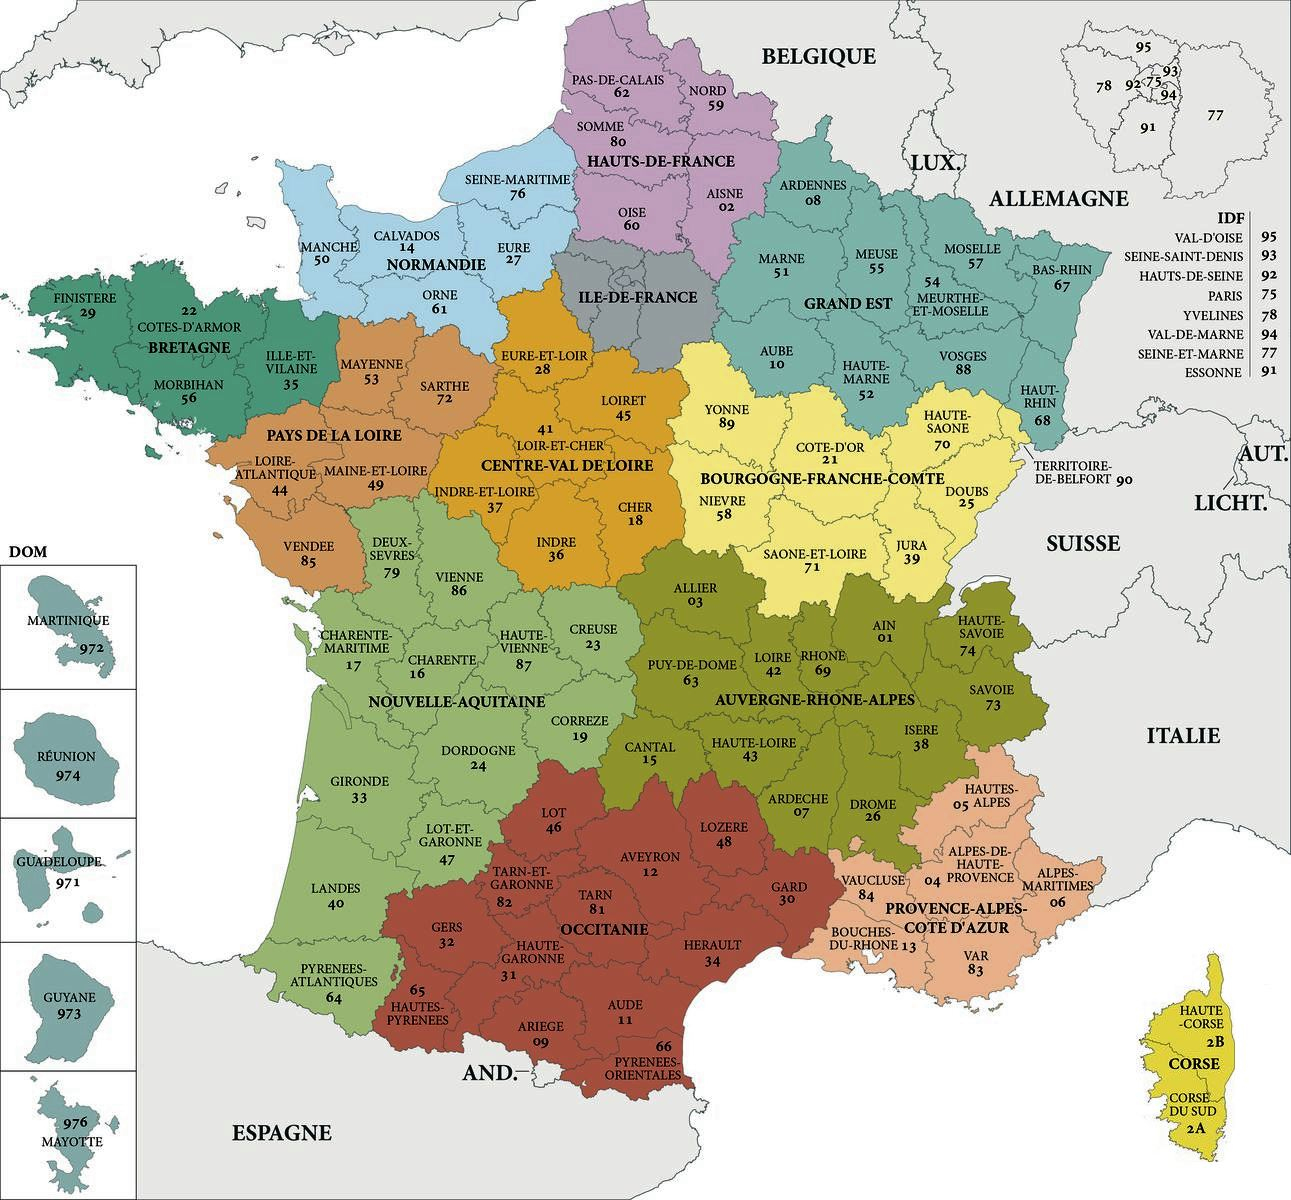 Carte De France Departements : Carte Des Départements De France tout Carte De France Avec Region